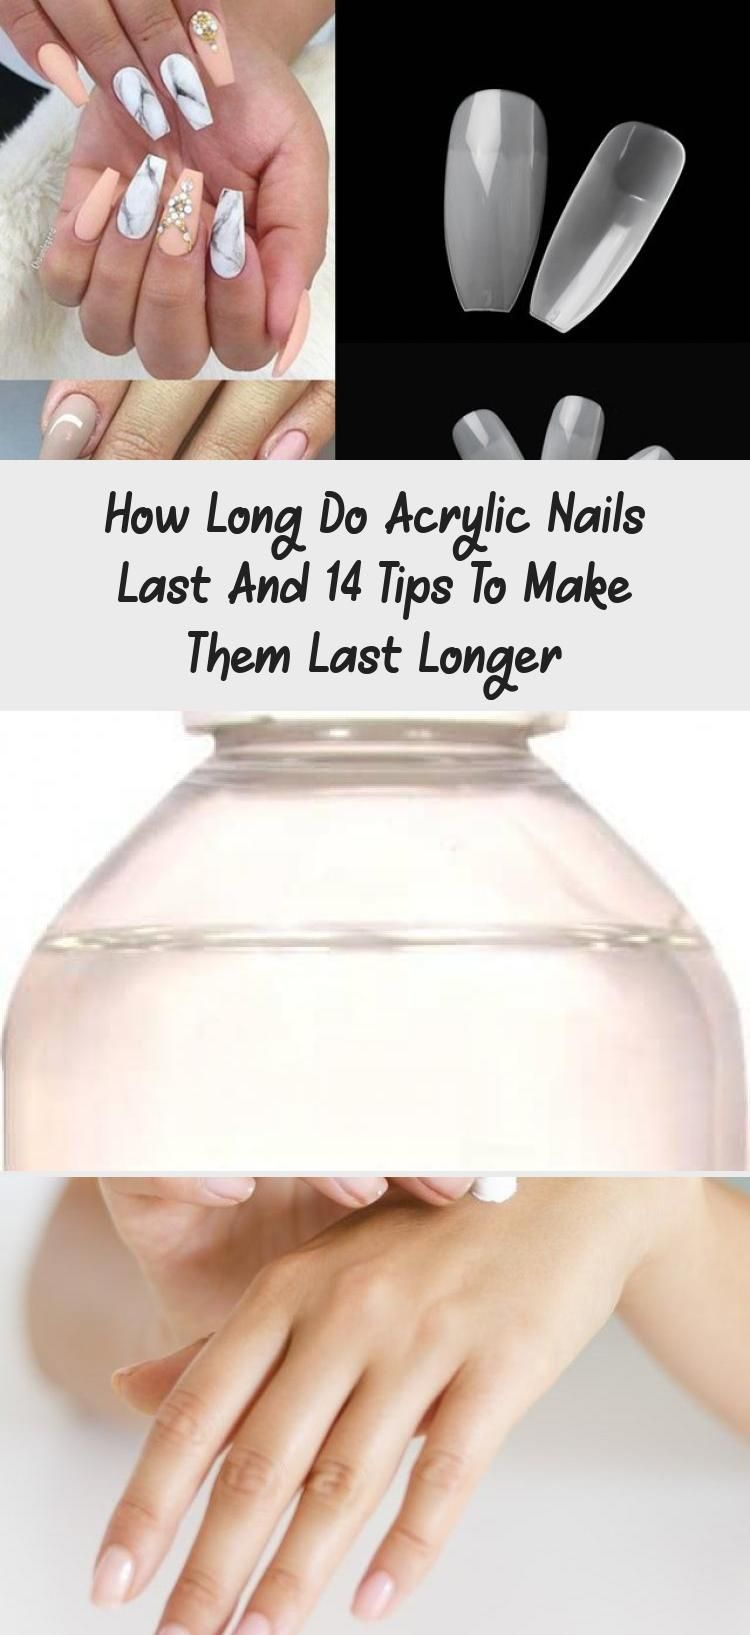 How Long Do Acrylic Nails Last And 14 Tips To Make Them Last Longer Makeup In 2020 Acrylic Nails Neon Acrylic Nails Neutral Nails Acrylic